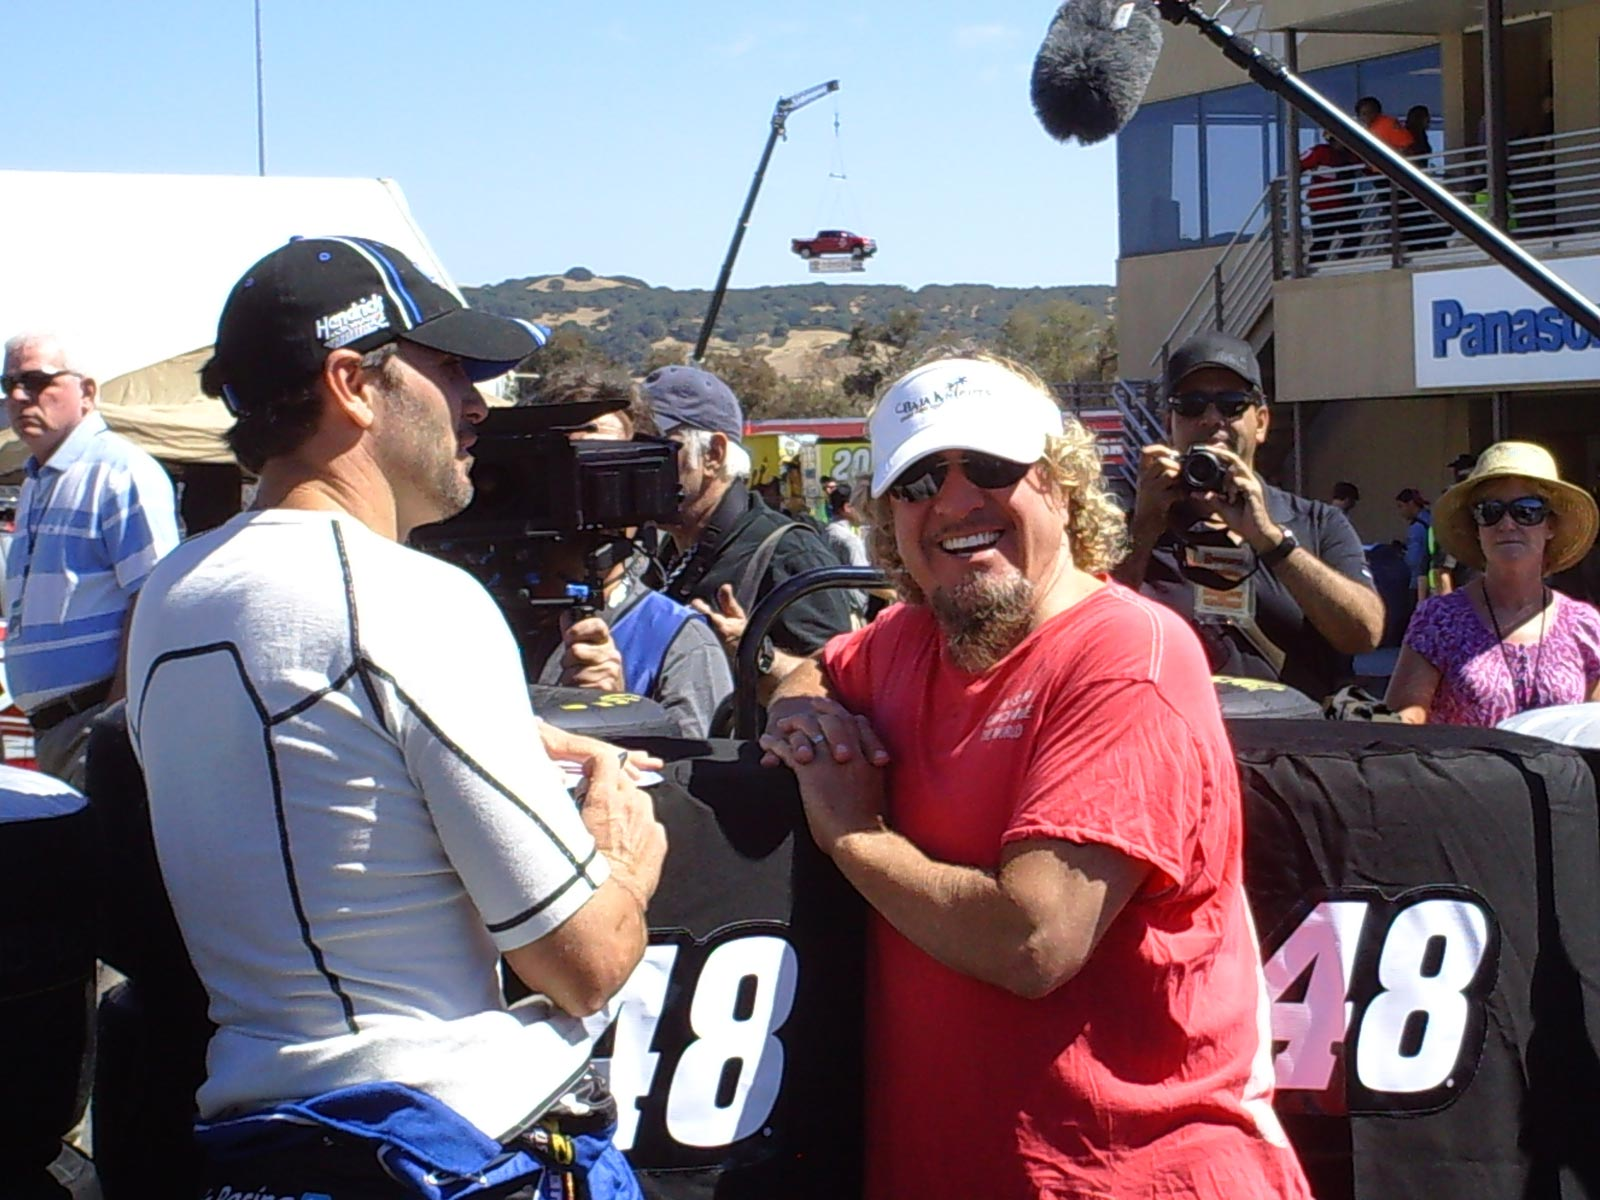 sonoma-friday-jimmie-johnson-sammy-hagar